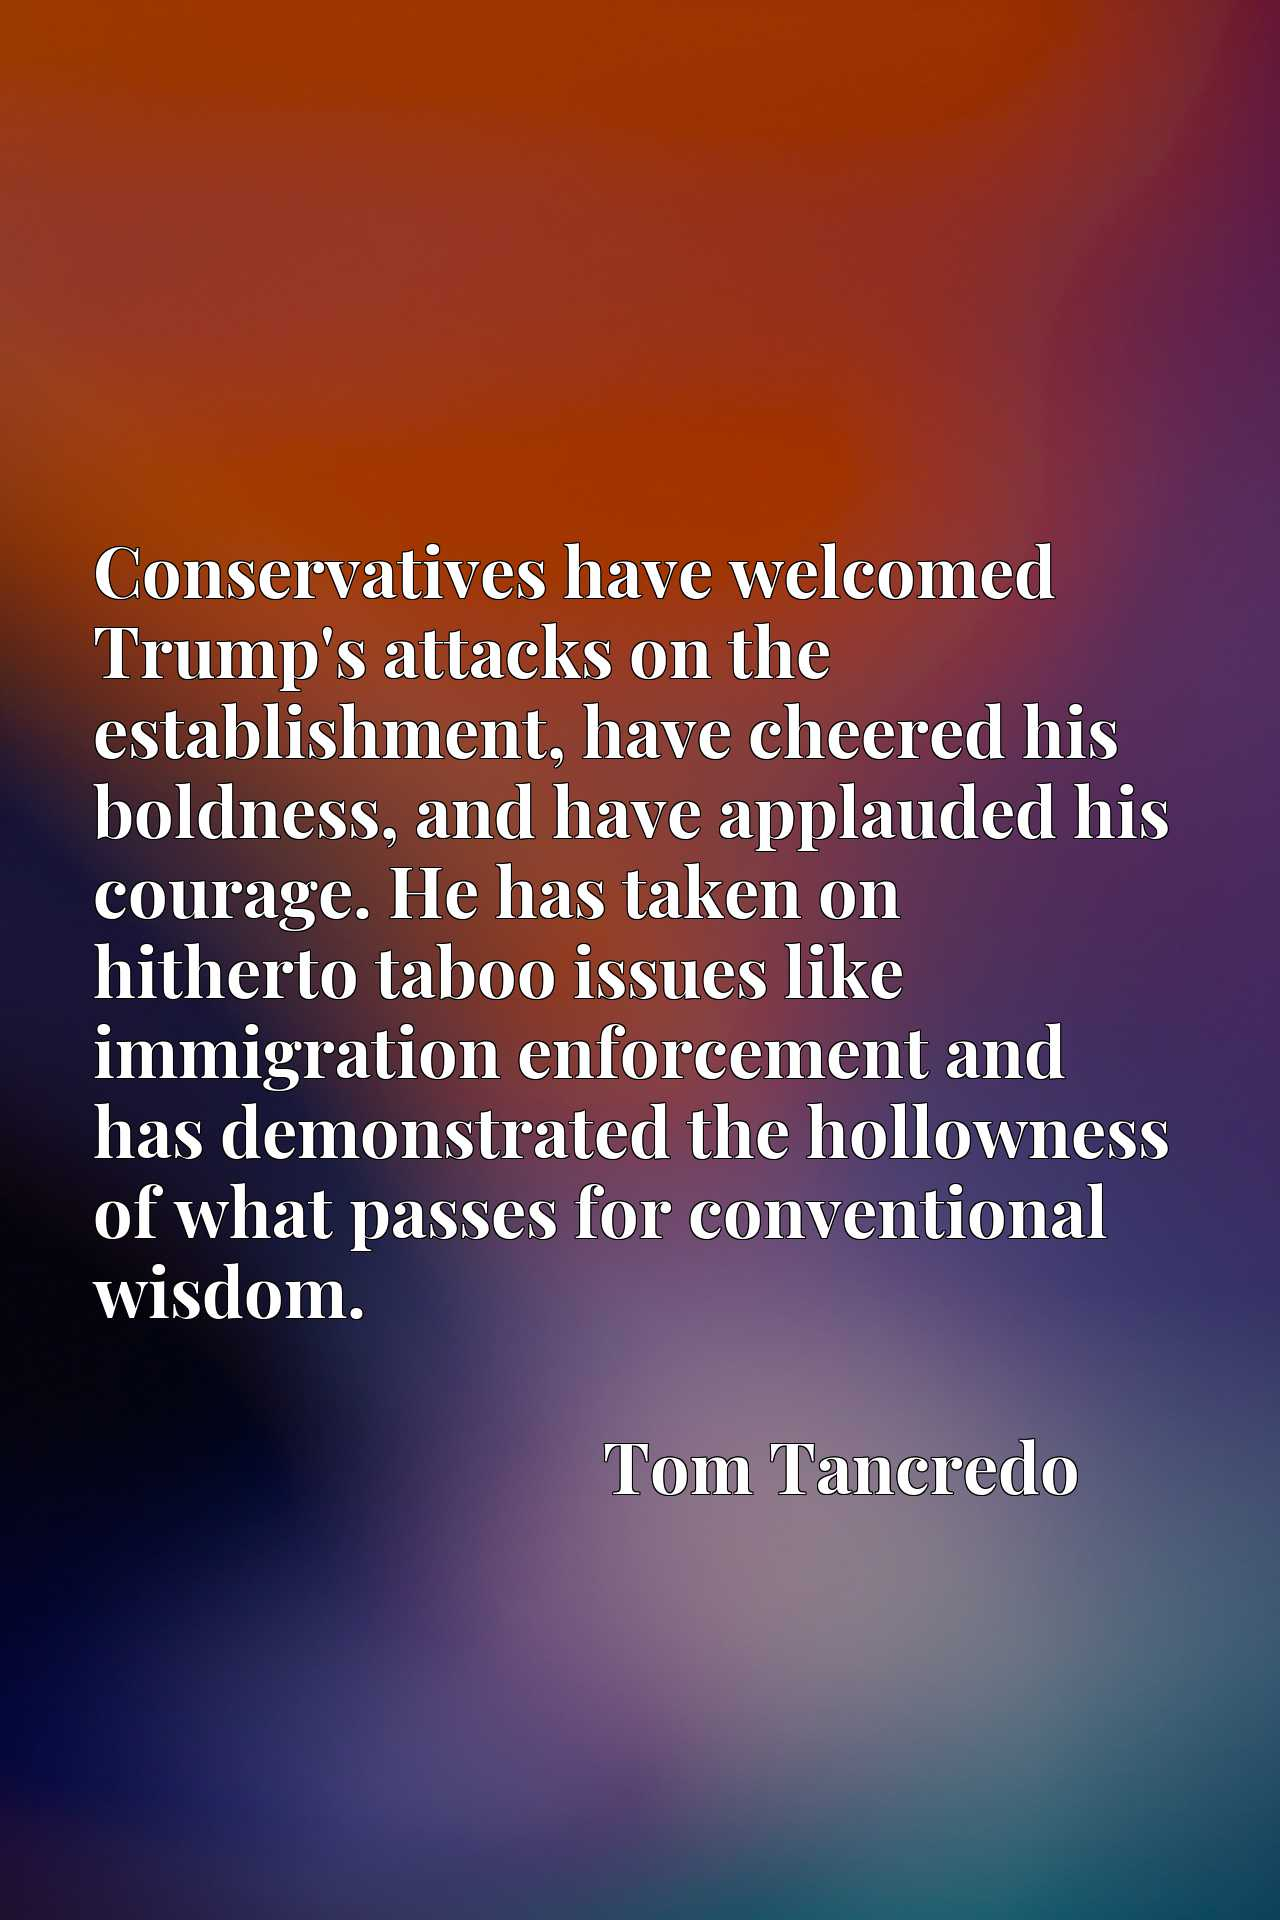 Conservatives have welcomed Trump's attacks on the establishment, have cheered his boldness, and have applauded his courage. He has taken on hitherto taboo issues like immigration enforcement and has demonstrated the hollowness of what passes for conventional wisdom.